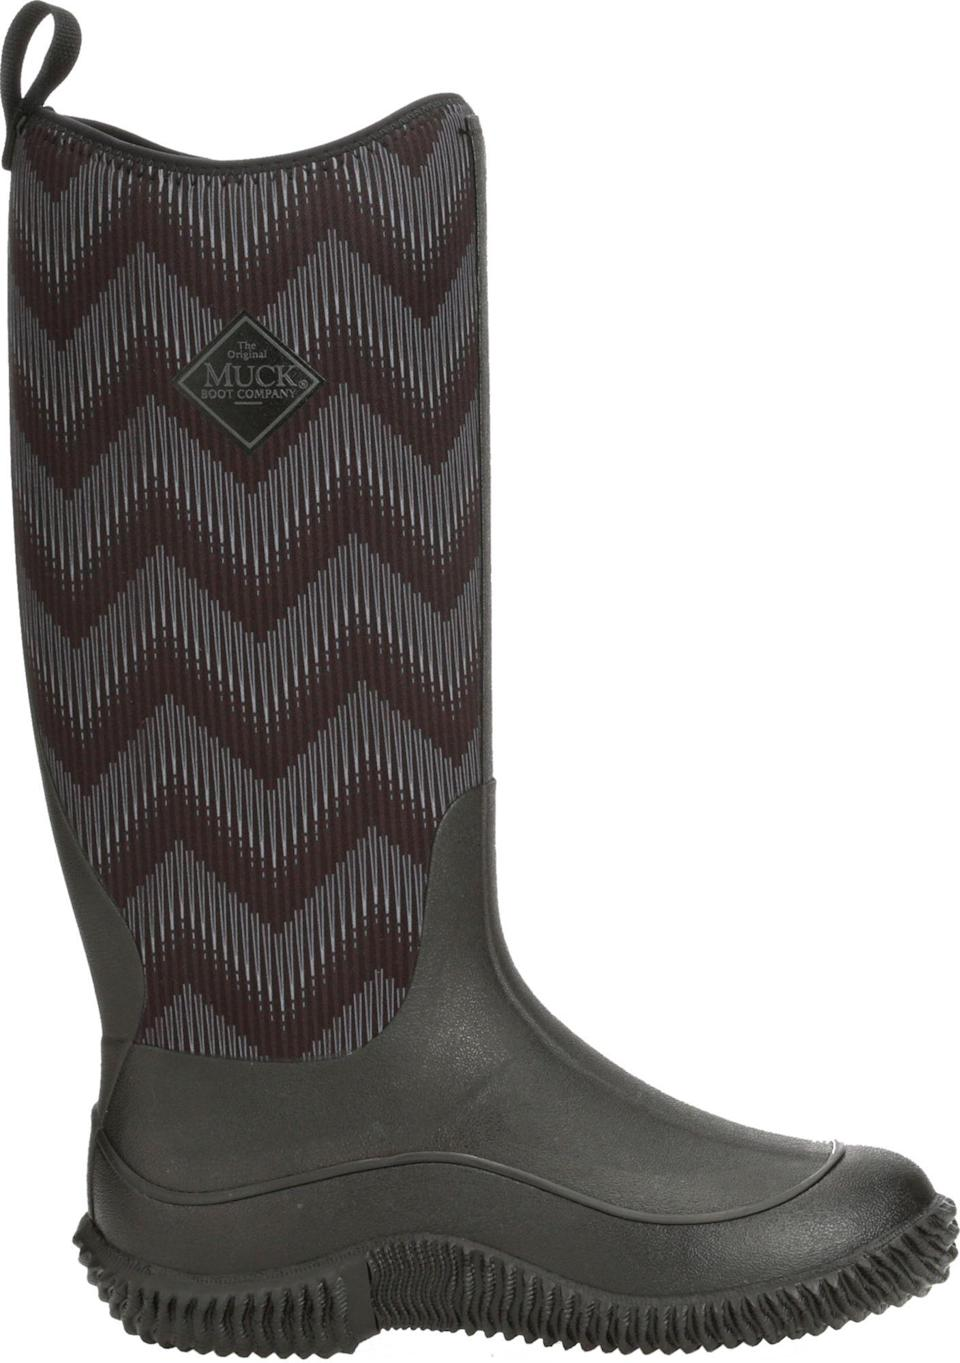 """<p><strong>Muck Boots</strong></p><p>dickssportinggoods.com</p><p><strong>$119.99</strong></p><p><a href=""""https://go.redirectingat.com?id=74968X1596630&url=https%3A%2F%2Fwww.dickssportinggoods.com%2Fp%2Fmuck-boots-womens-hale-chevron-waterproof-boots-19mbowwhlblckchvrfbo%2F19mbowwhlblckchvrfbo&sref=https%3A%2F%2Fwww.thepioneerwoman.com%2Ffashion-style%2Fg34010656%2Fbest-muck-boots-for-women%2F"""" rel=""""nofollow noopener"""" target=""""_blank"""" data-ylk=""""slk:Shop Now"""" class=""""link rapid-noclick-resp"""">Shop Now</a></p><p>Work boots don't need to be plain. You'll love these chevron-pattered tall Muck Boots if you're looking for true workhorse boots with a little flair. </p>"""